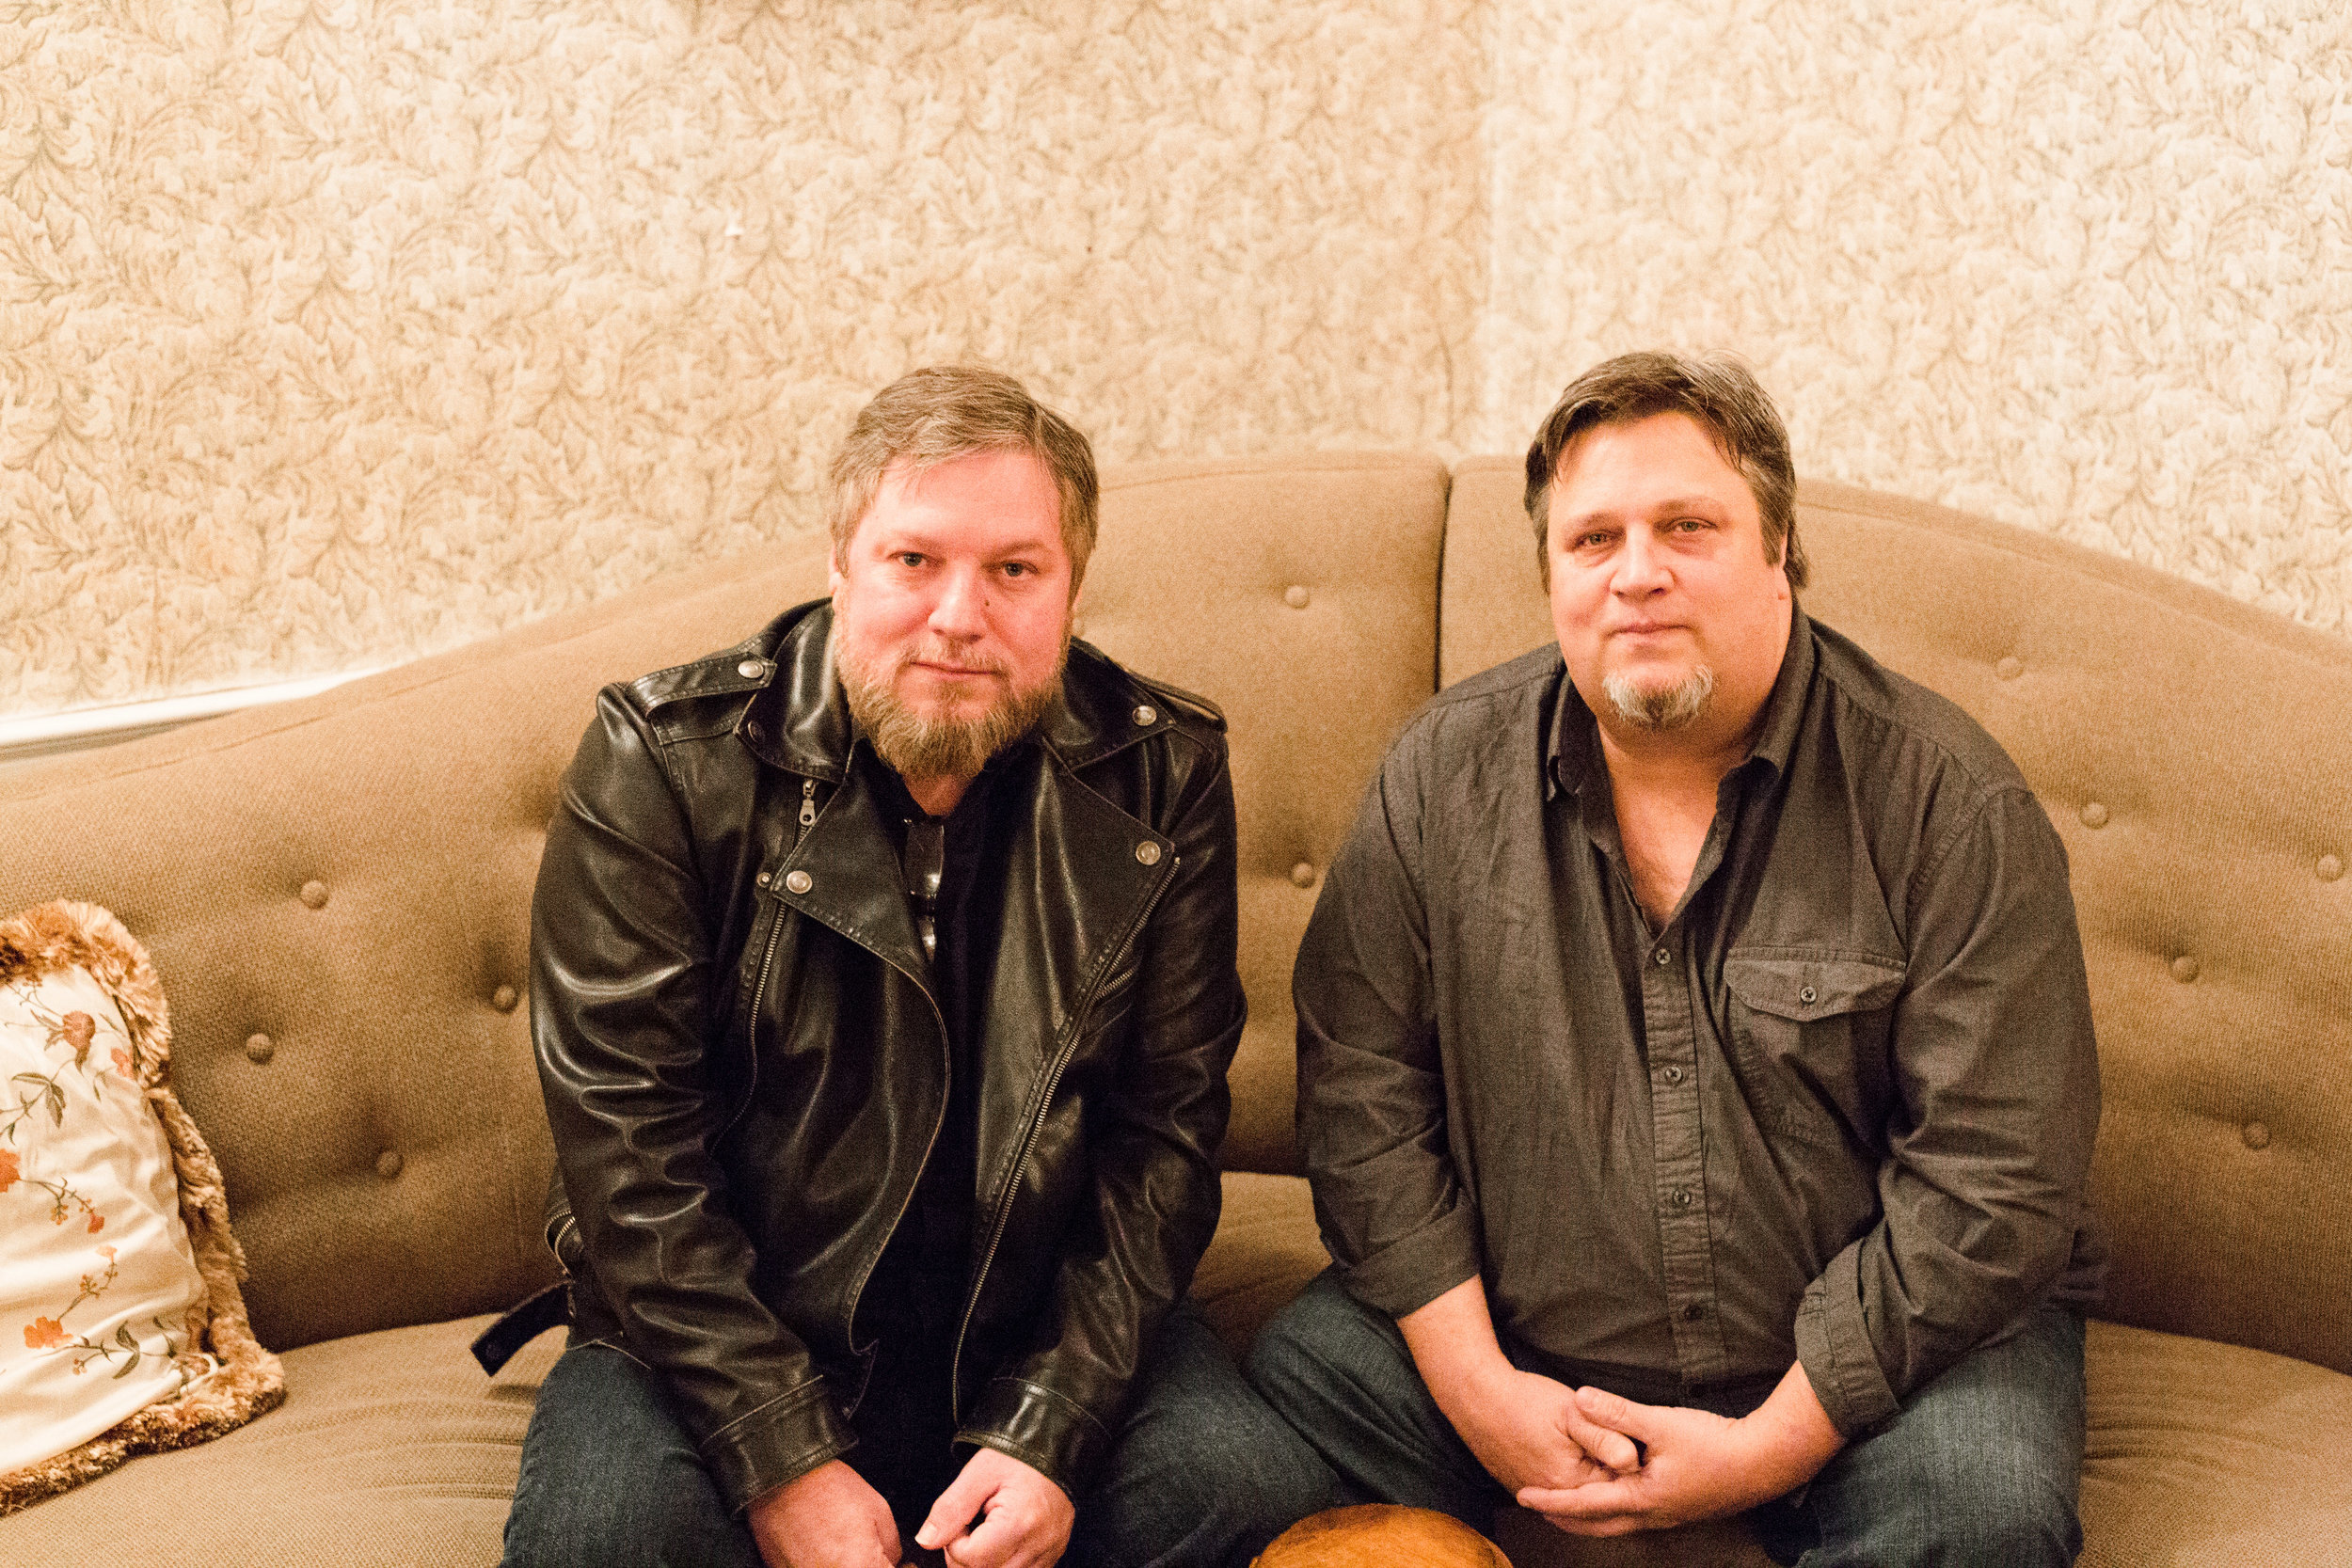 Reggie and Ryan Harris have toured as The Harris Brothers for 20+ years.